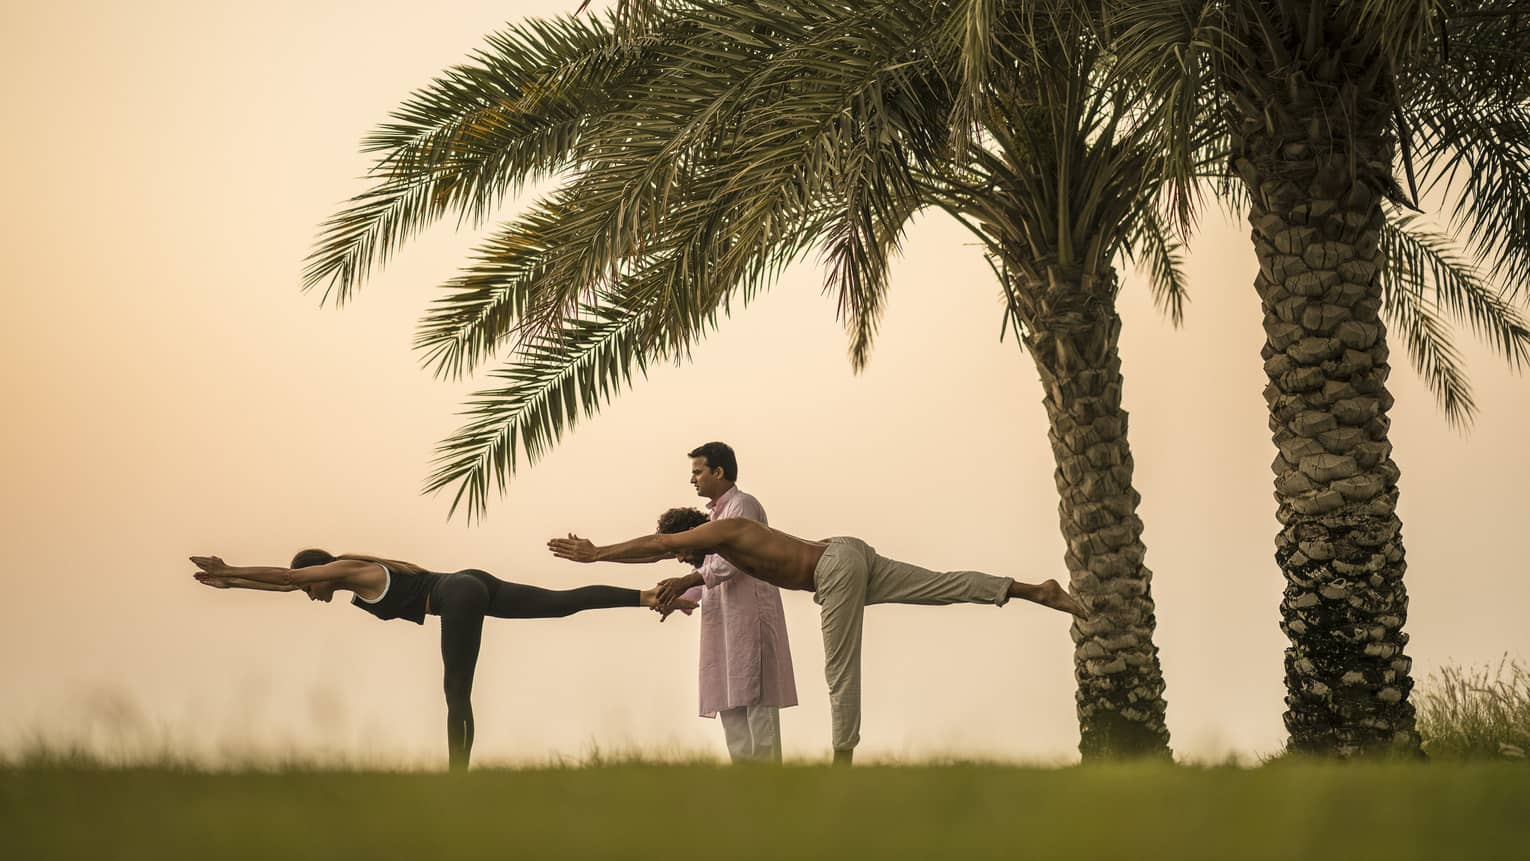 Yogi stands between man and woman doing yoga poses on lawn in front of two palm trees